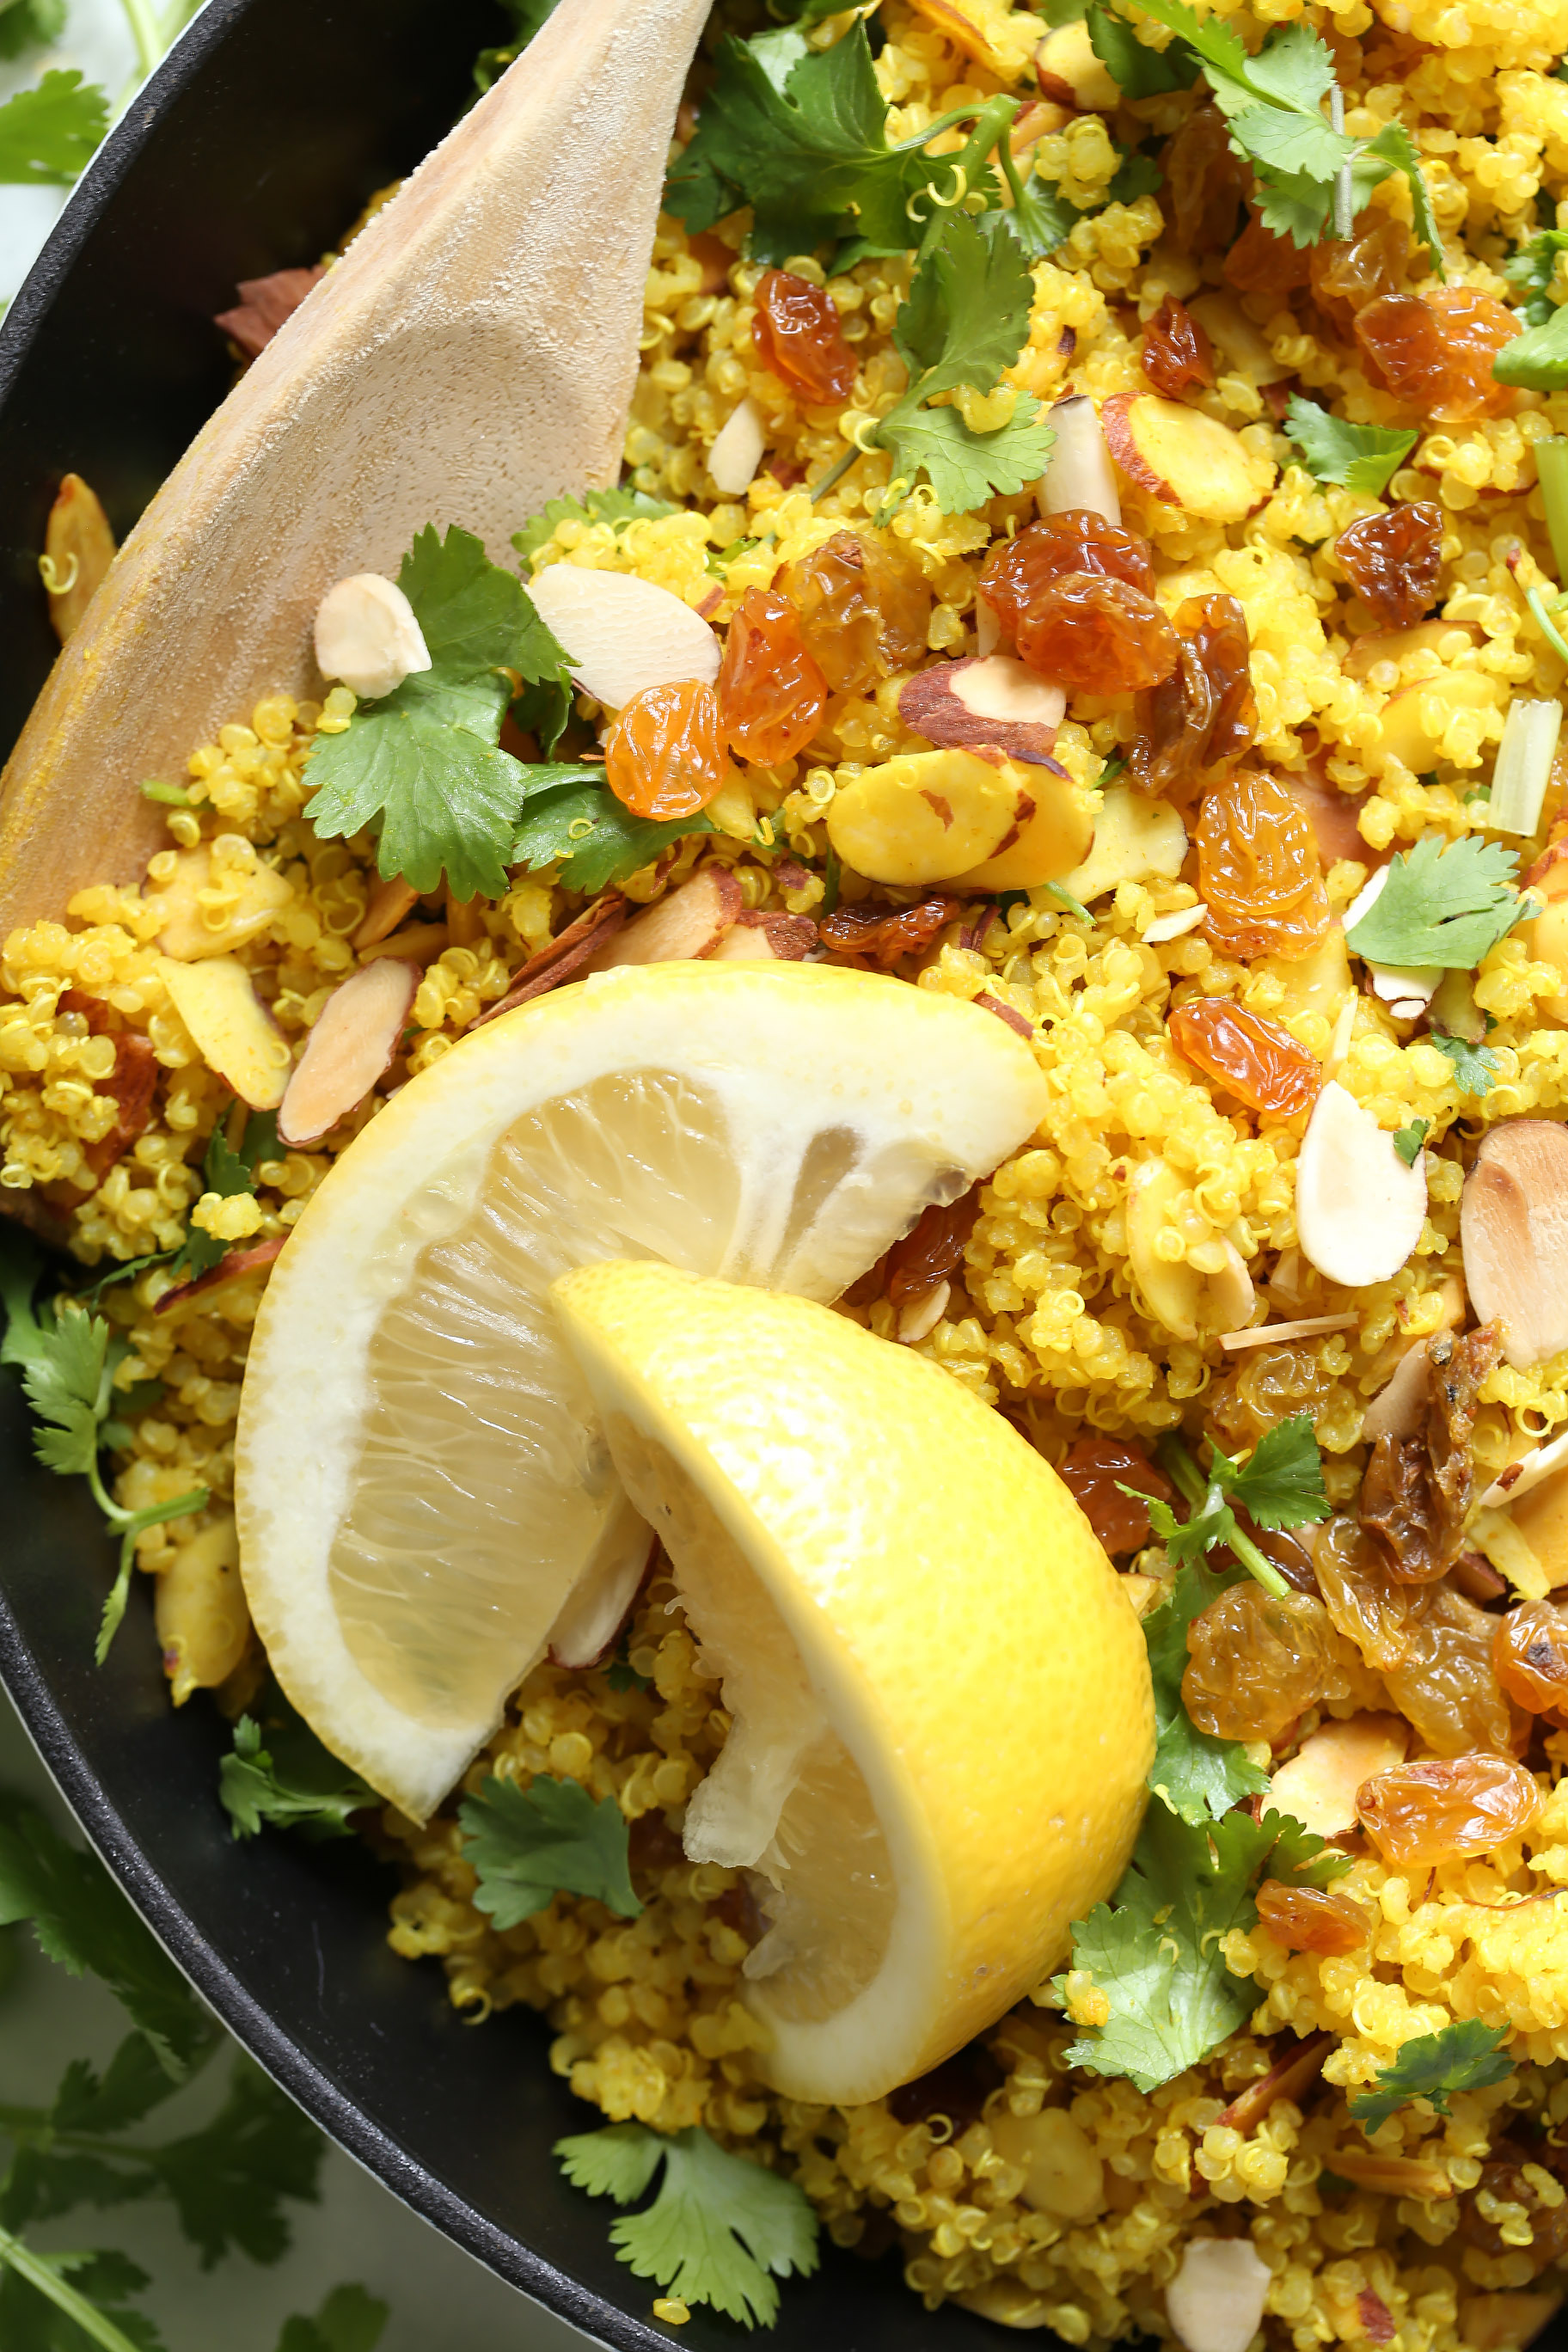 Lemony Quinoa with Turmeric